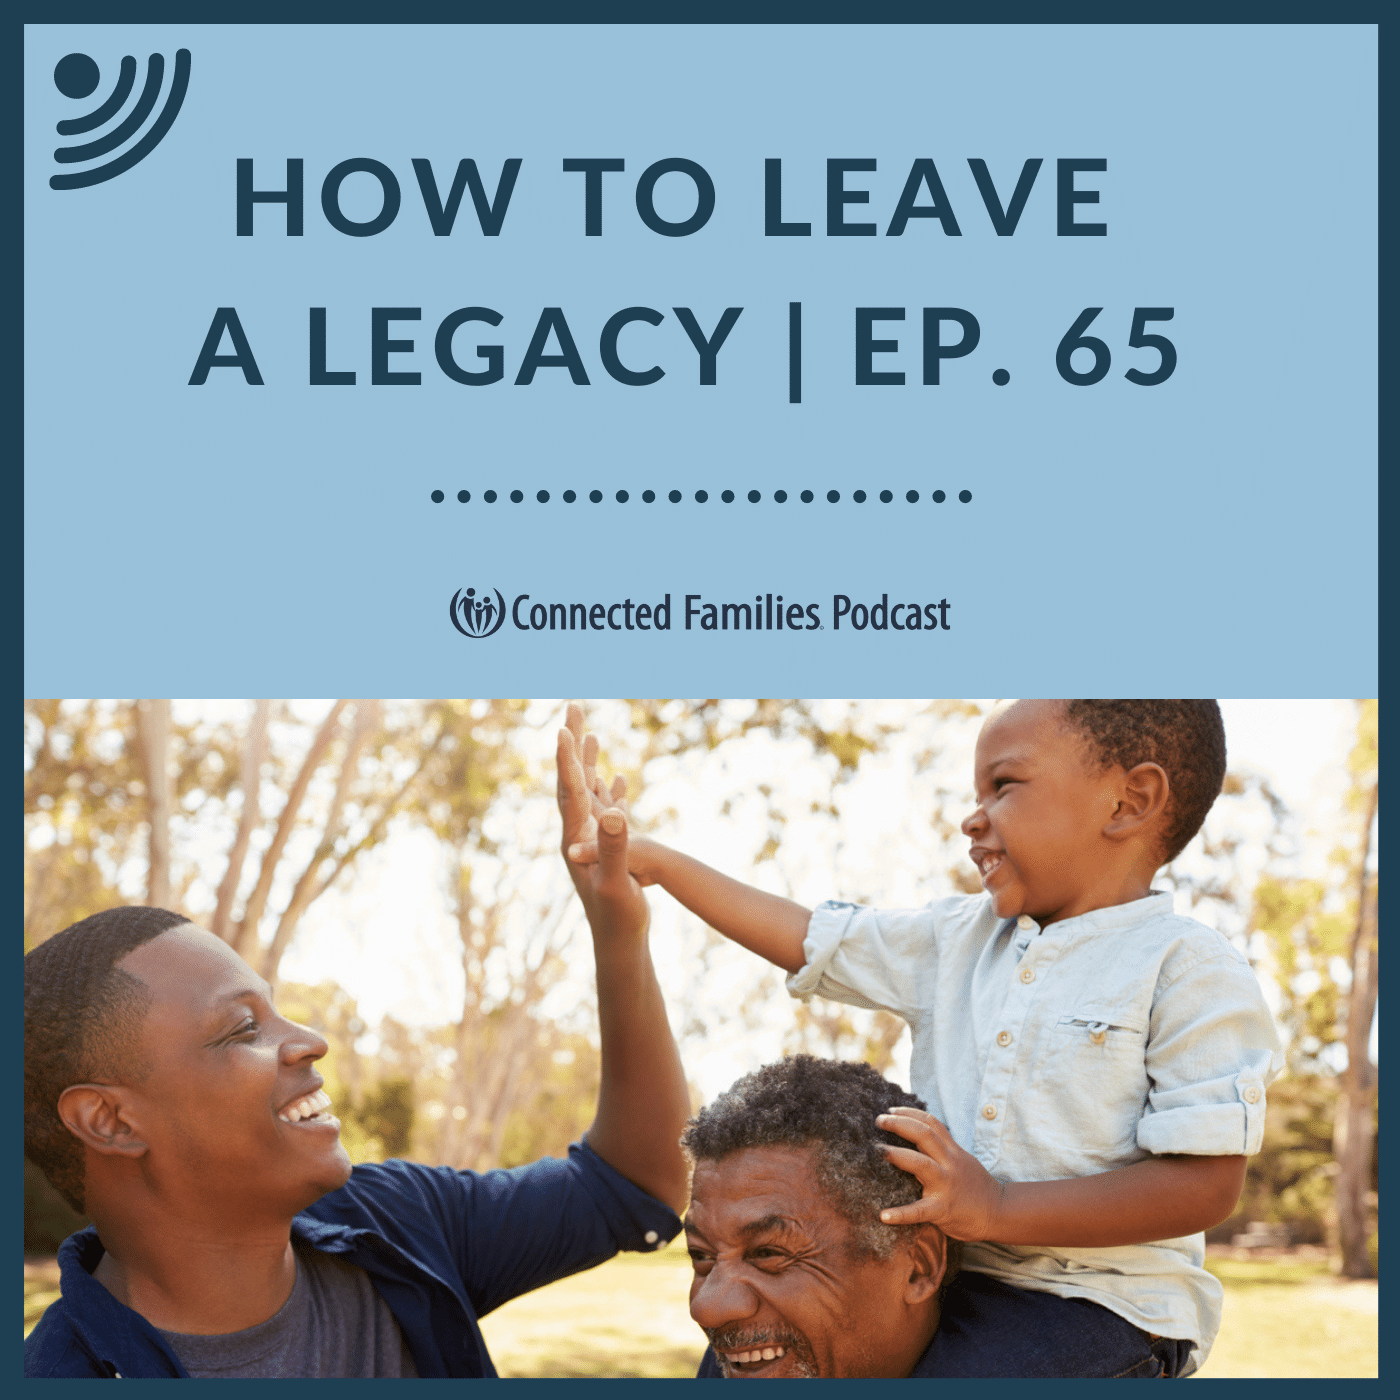 How to Leave a Legacy | Ep. 65